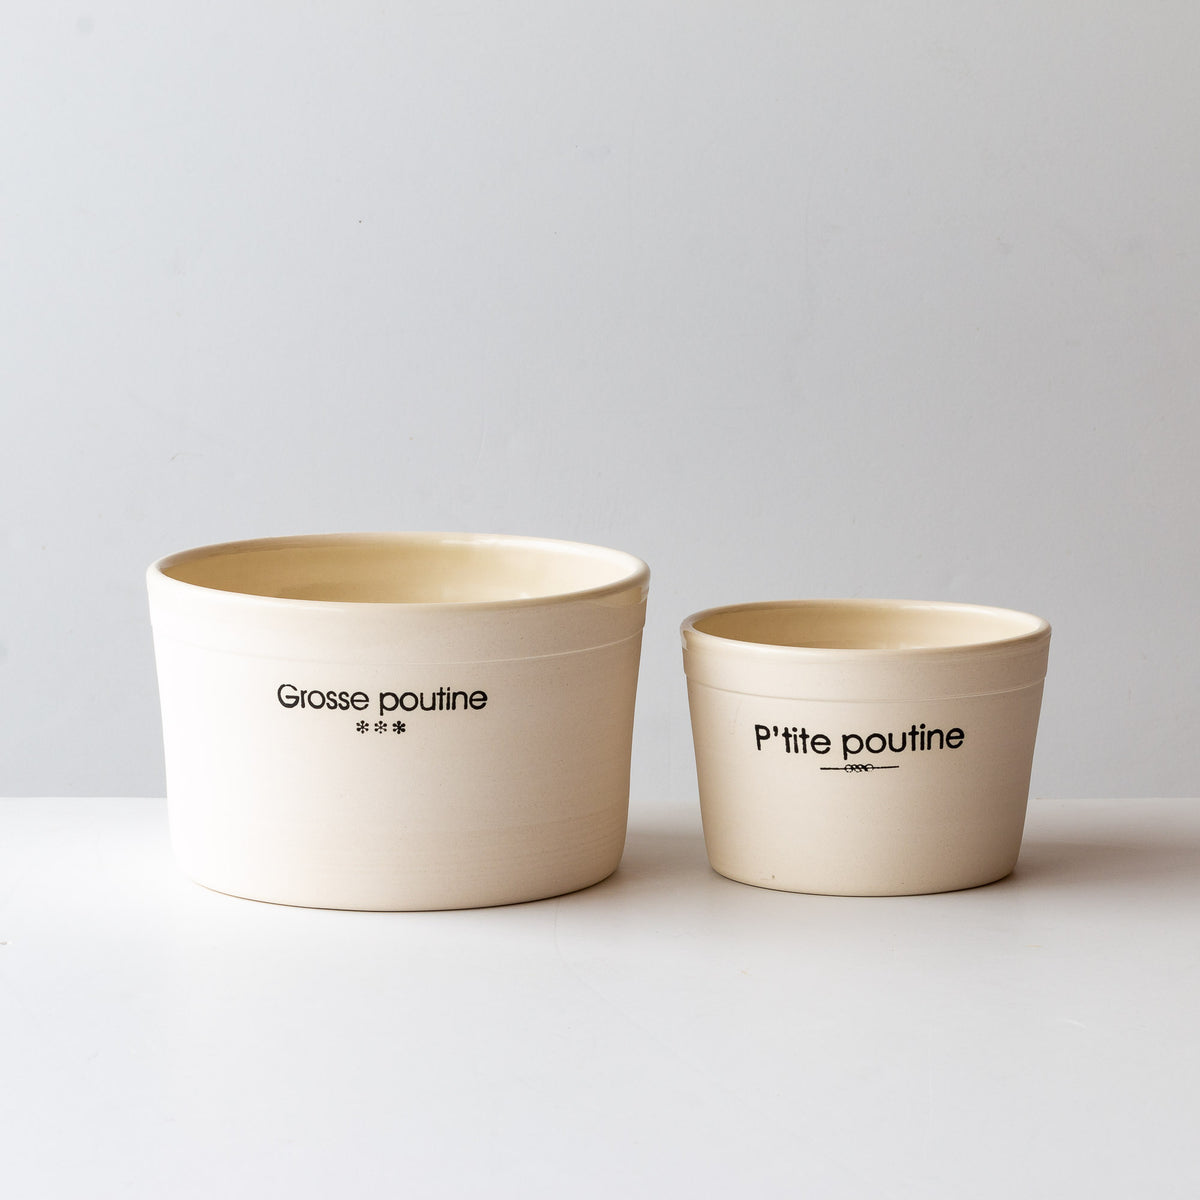 "Handmade Porcelain Bowls - ""Petite Poutine"" & ""Grosse Poutine"" - Sold by Chic & Basta"